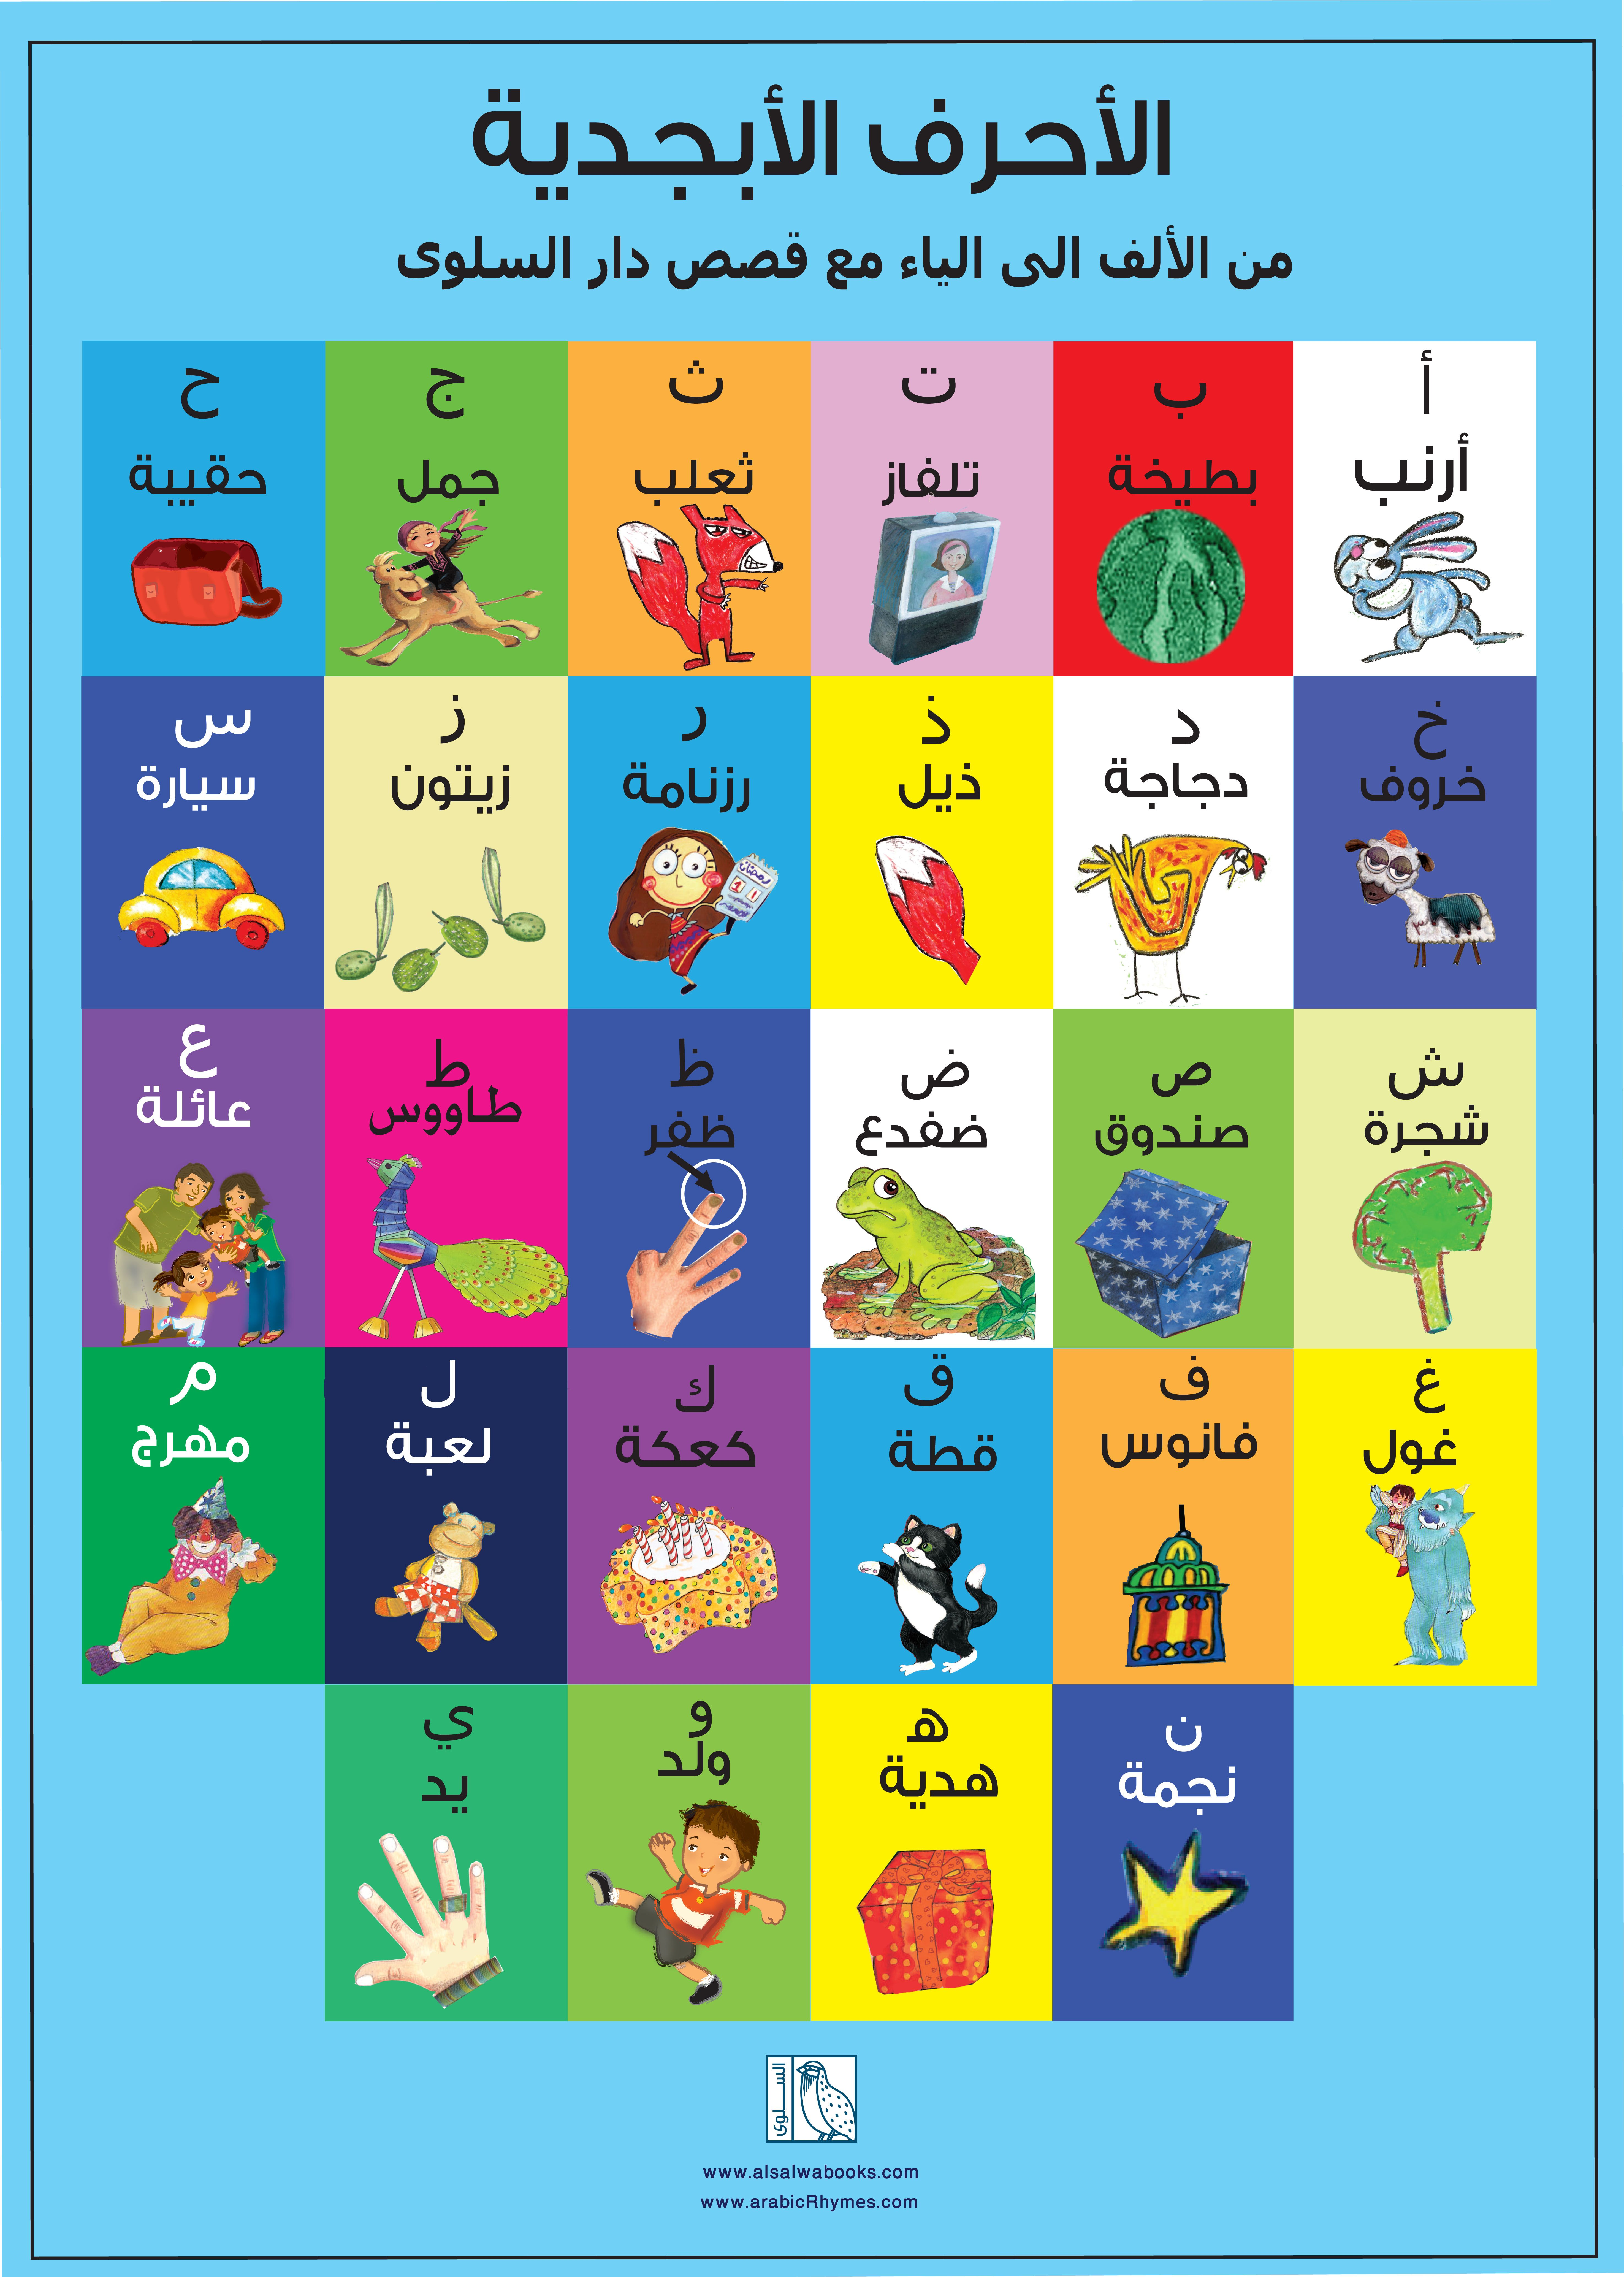 This Is Arabic Alphabets Poster I Made For Kids Using